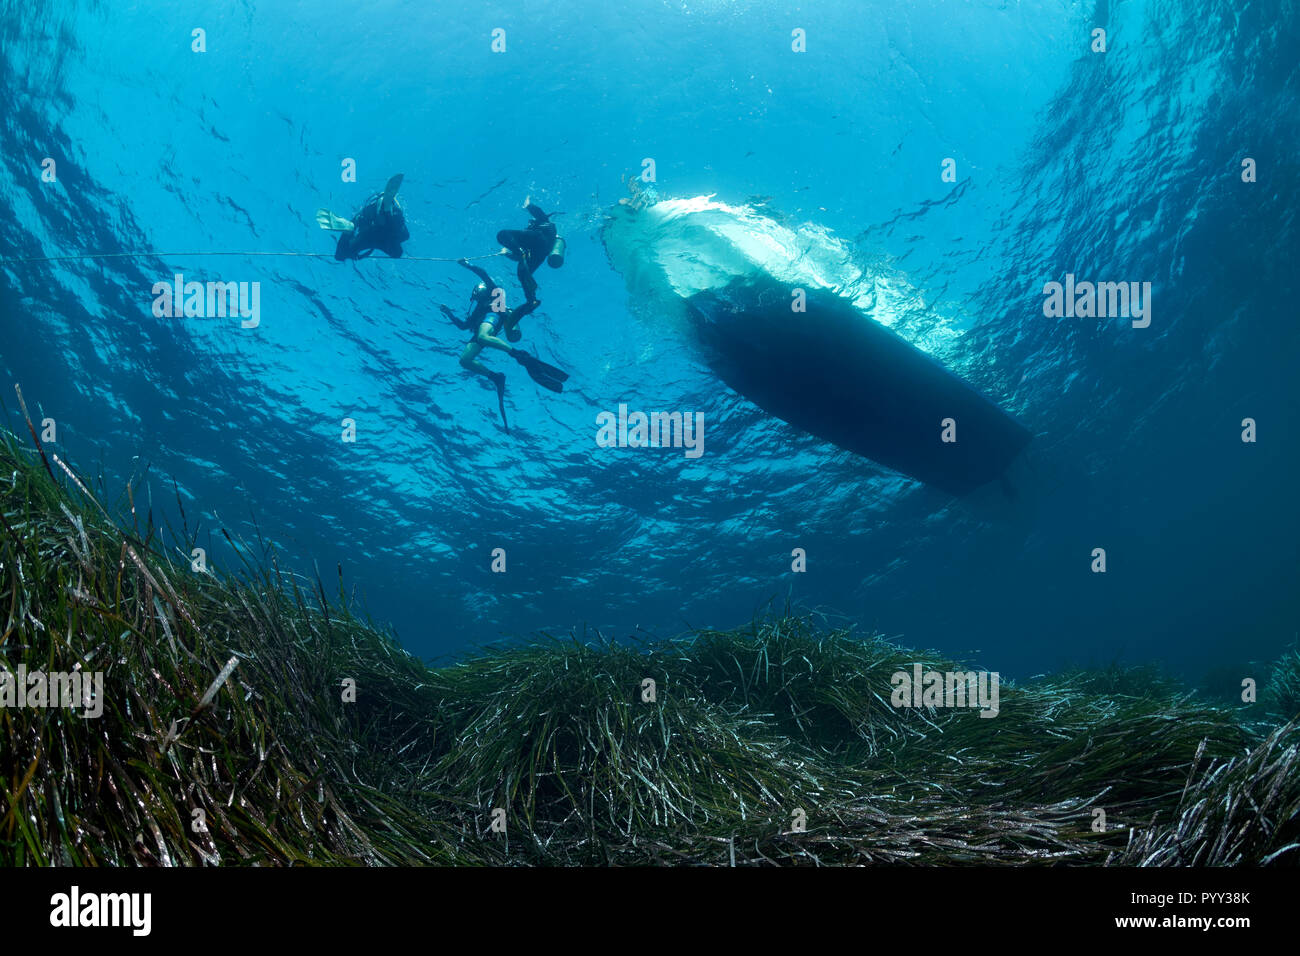 Divers dive on rope, Diving boat, Neptune Grass (Posidonia oceanica), Mediterranean Sea, Southern Cyprus, Cyprus - Stock Image